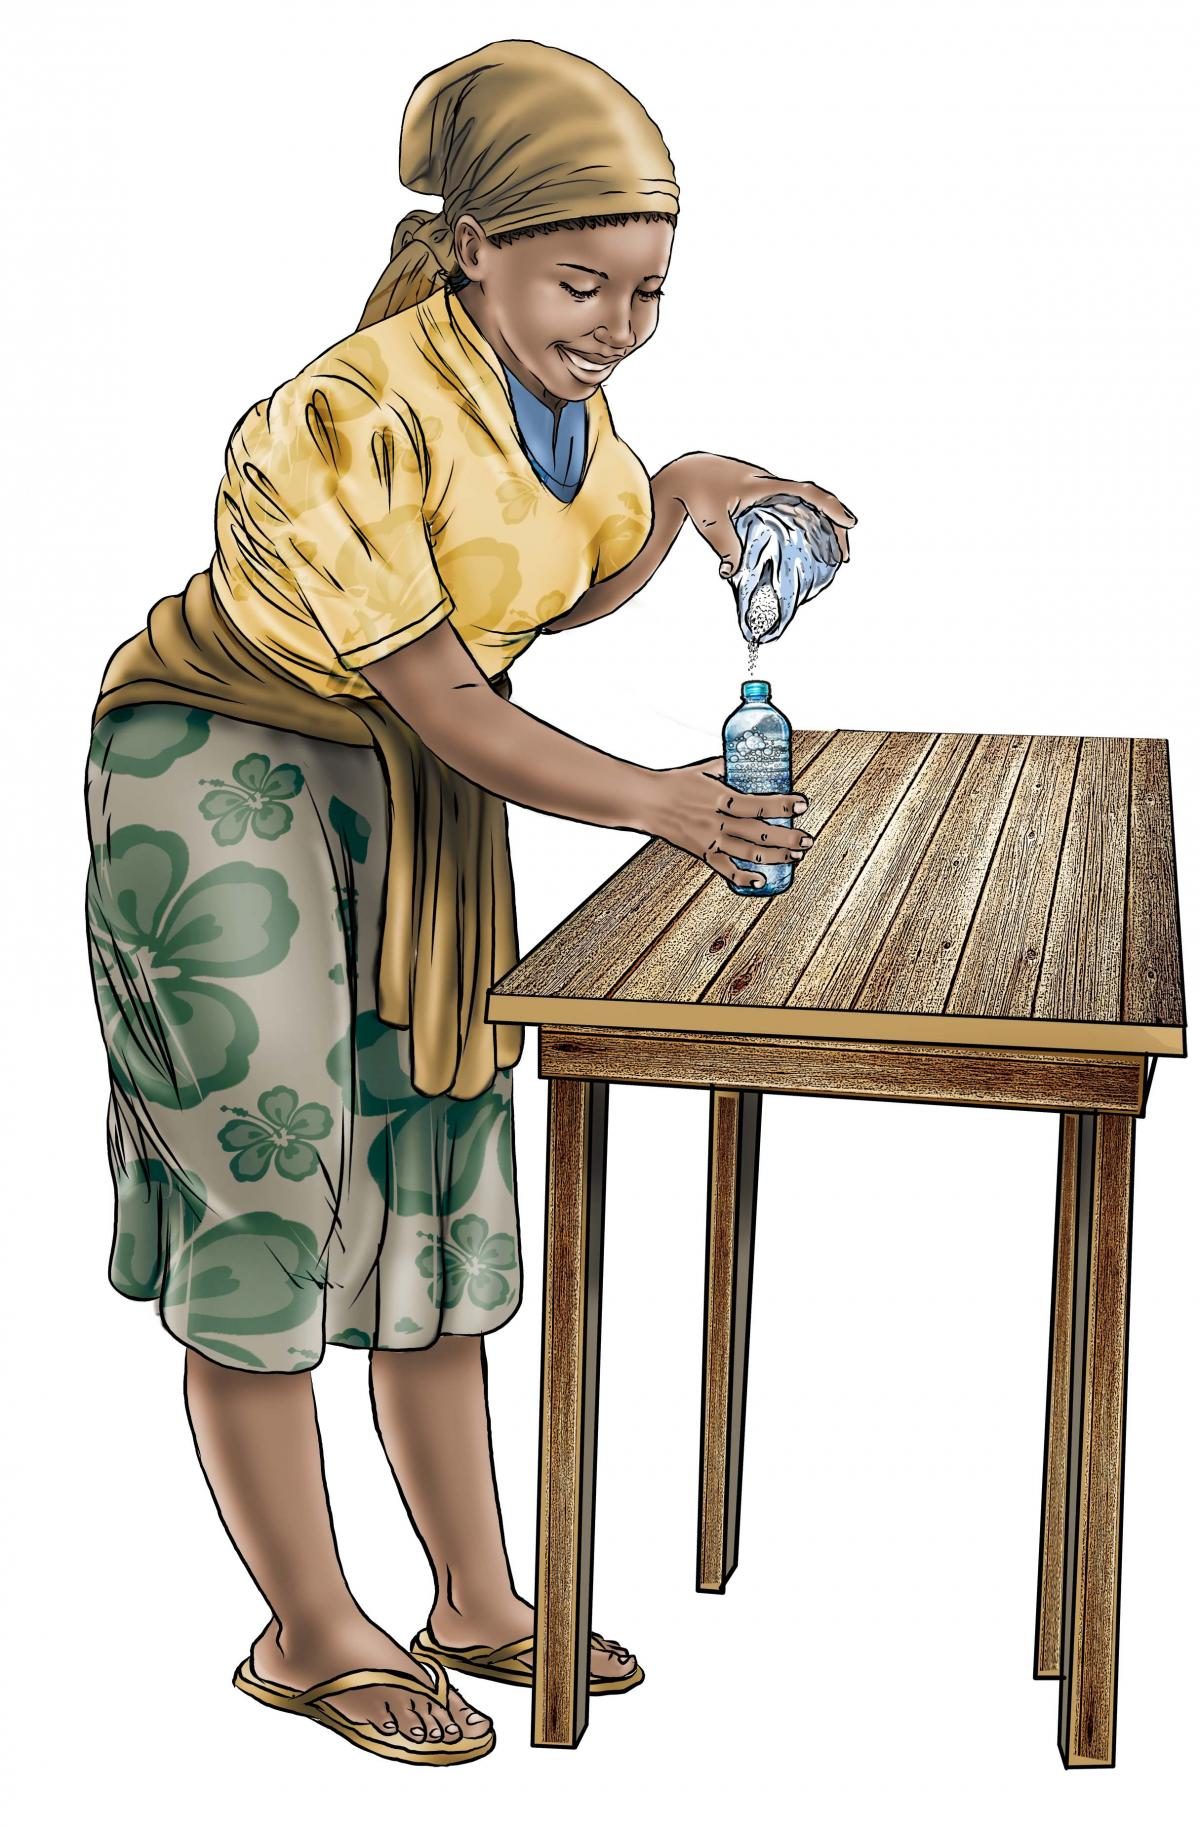 Hygiene - Mixing soap water for tippy tap - 05 - Sierra Leone